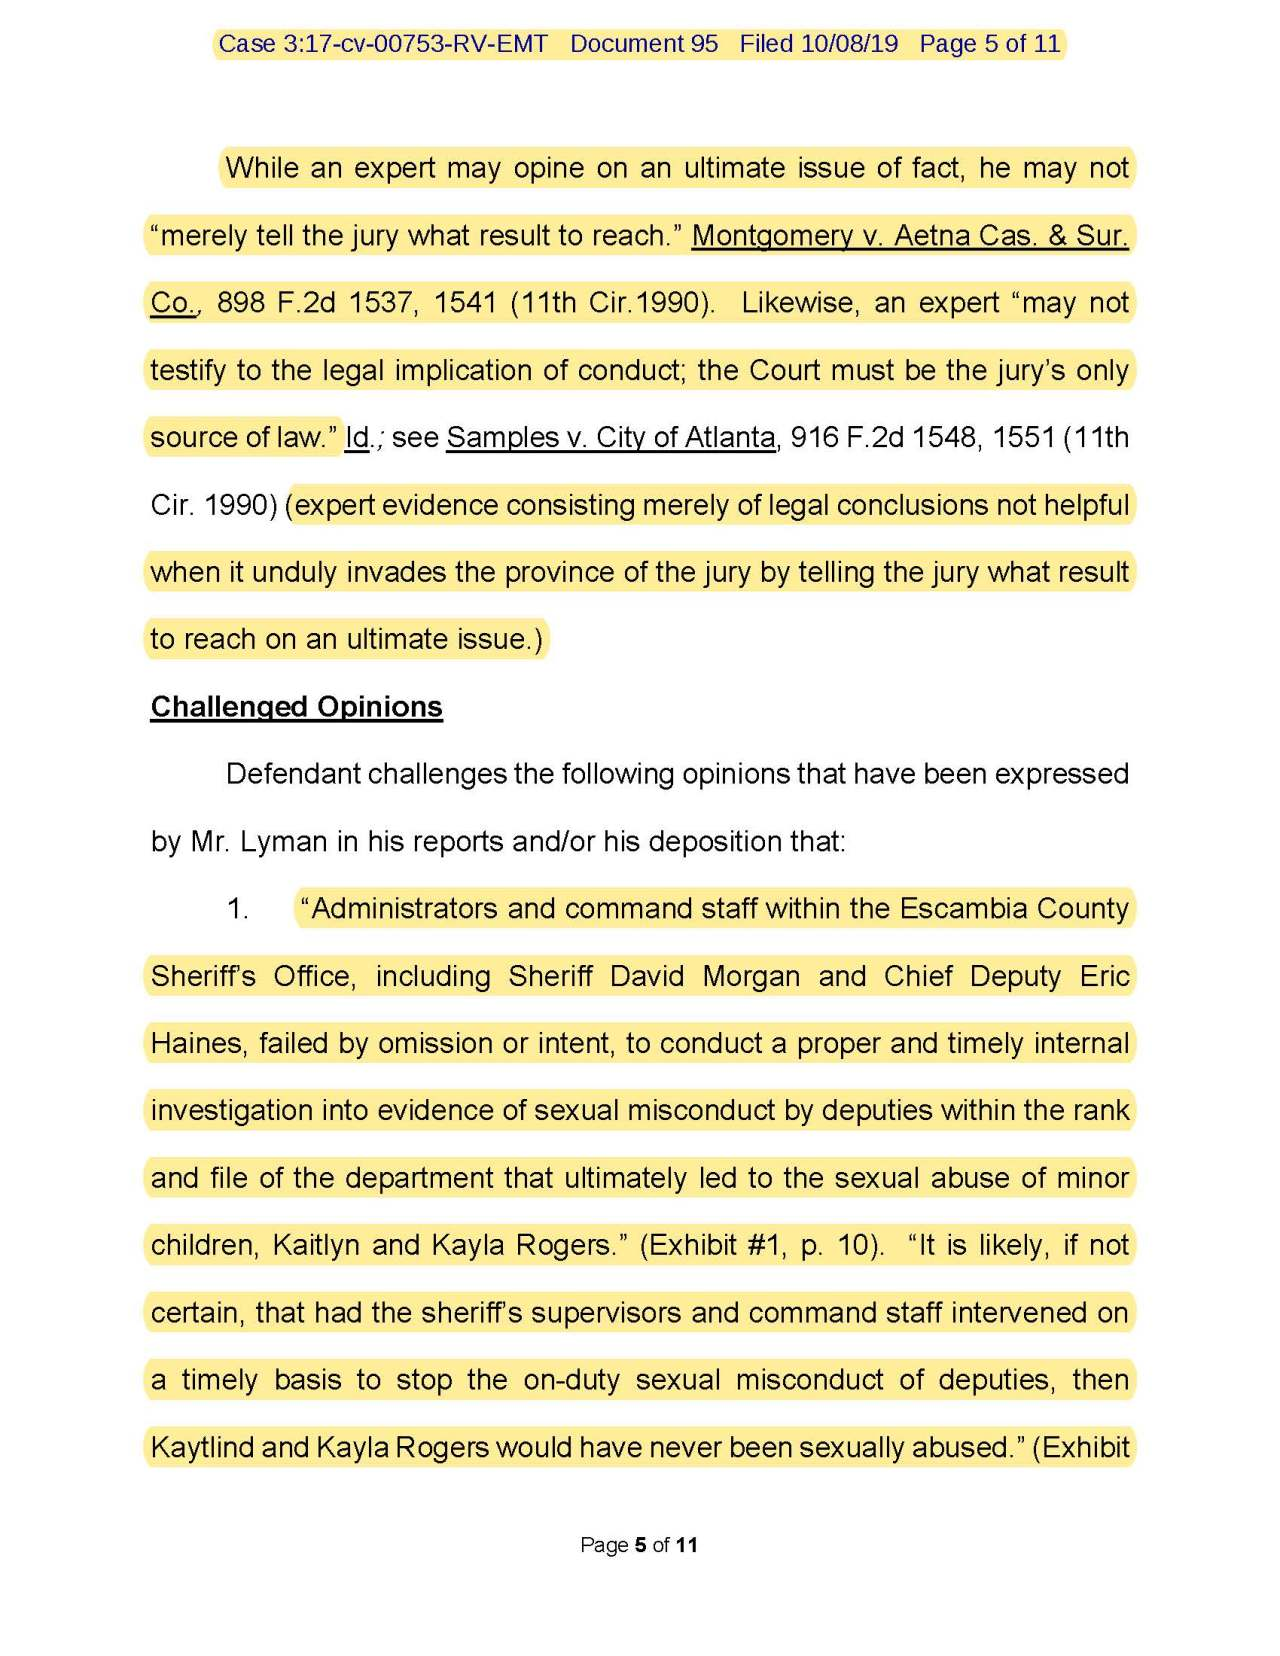 motion to exclude expert testimony_Page_05